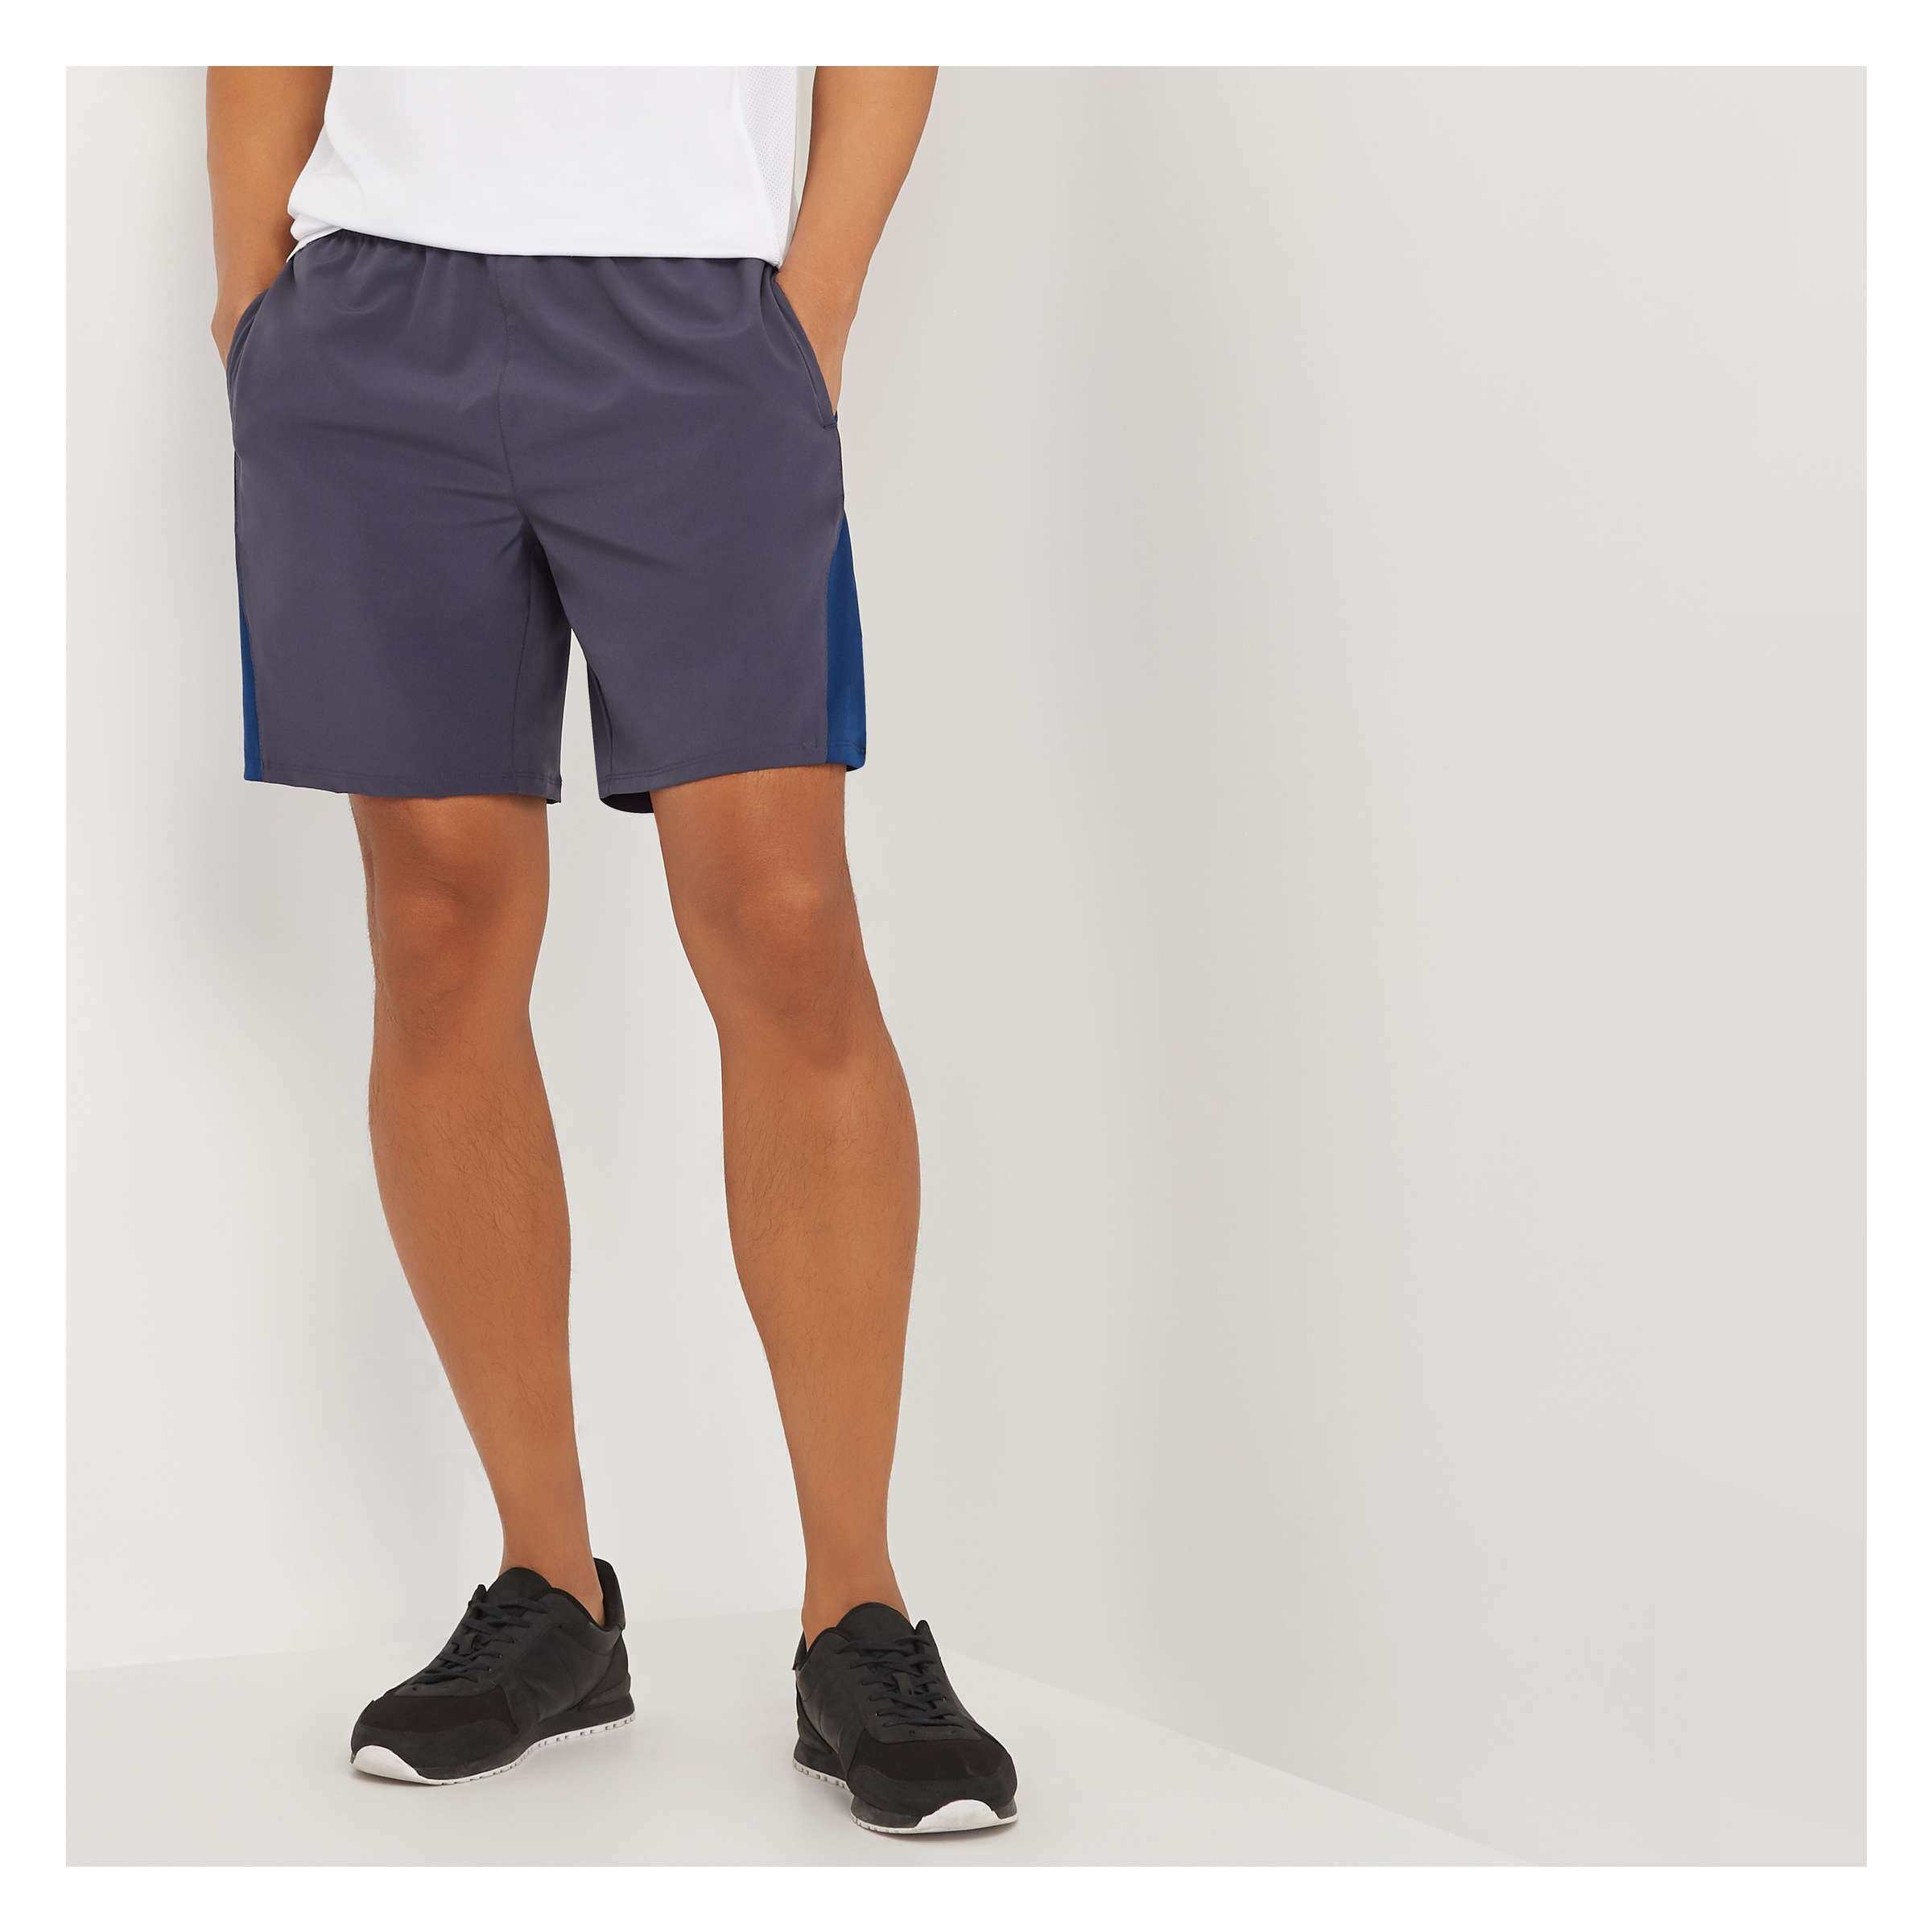 355ce0d11b0a Men's Gym Short with Drawstring Waist in Storm Grey from Joe Fresh